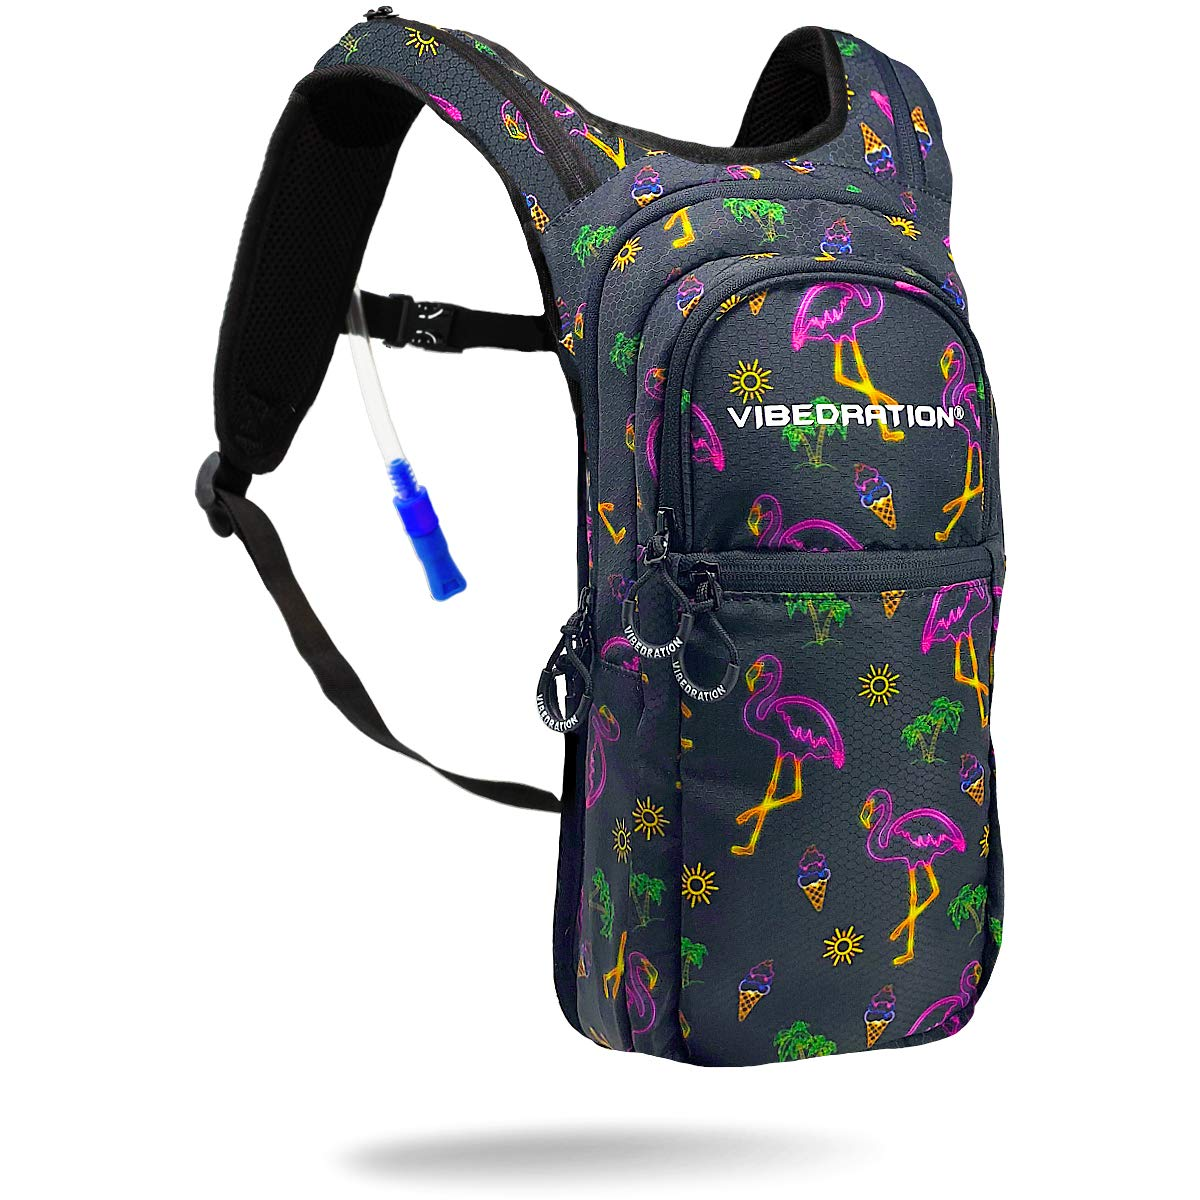 Vibedration VIP 2 Liter Hydration Pack | Festival Rave Hydration, Hiking Camping Backpack (Neon Flamingo)